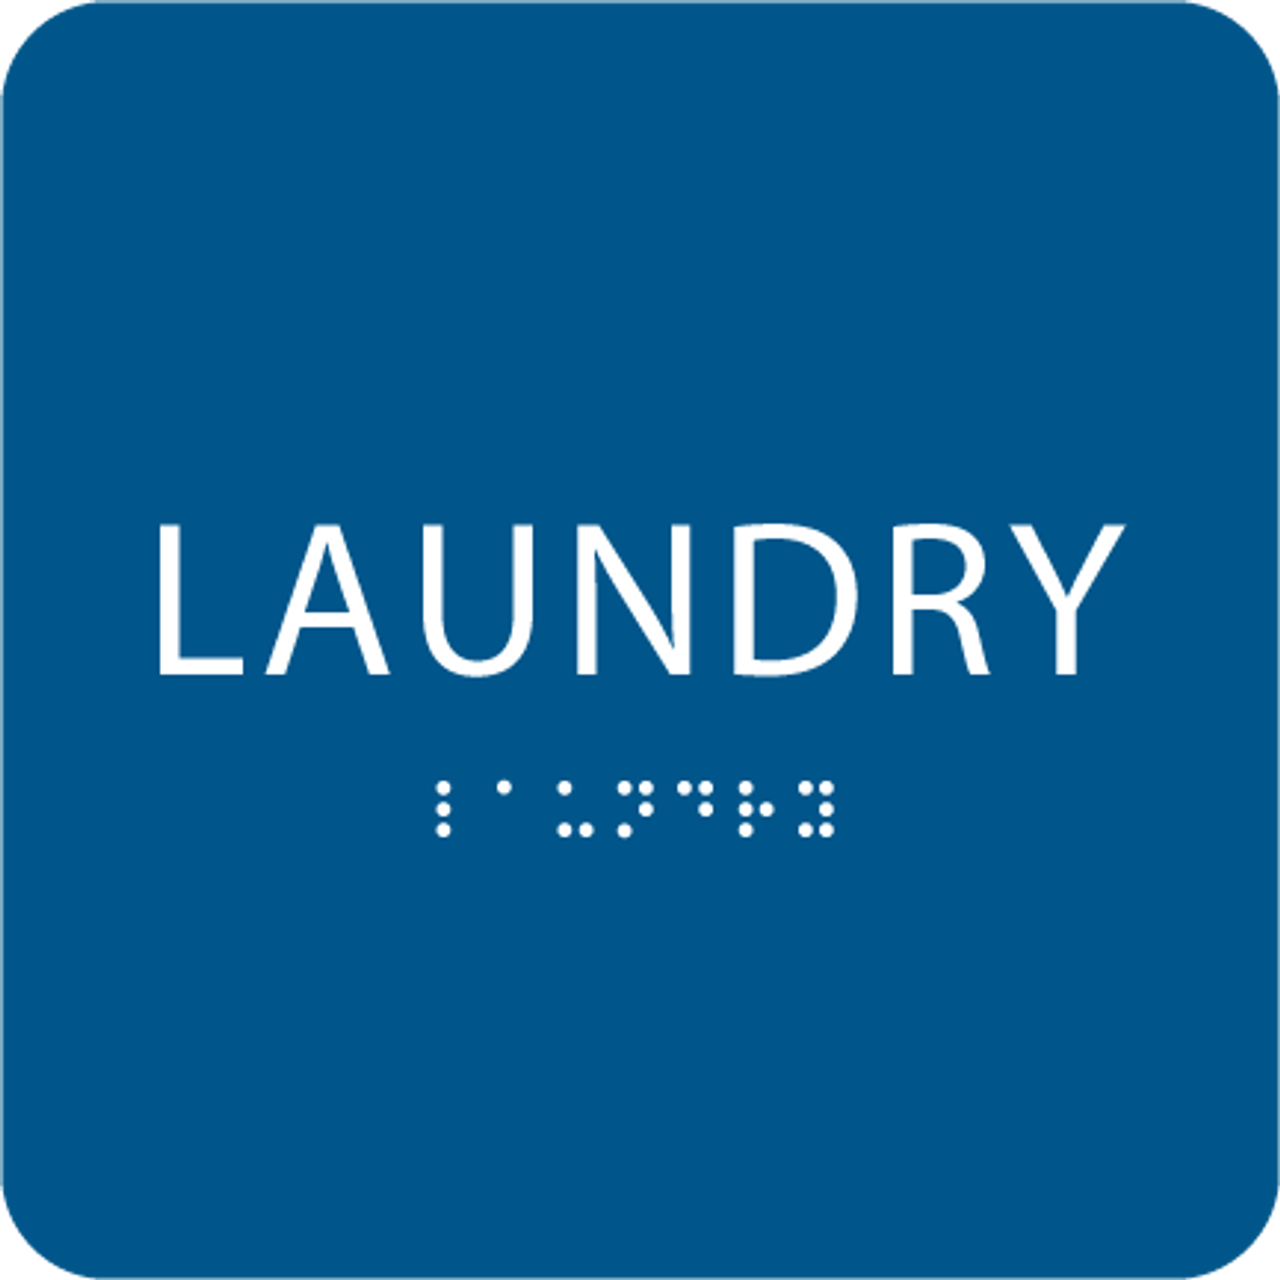 Blue Laundry Braille Sign